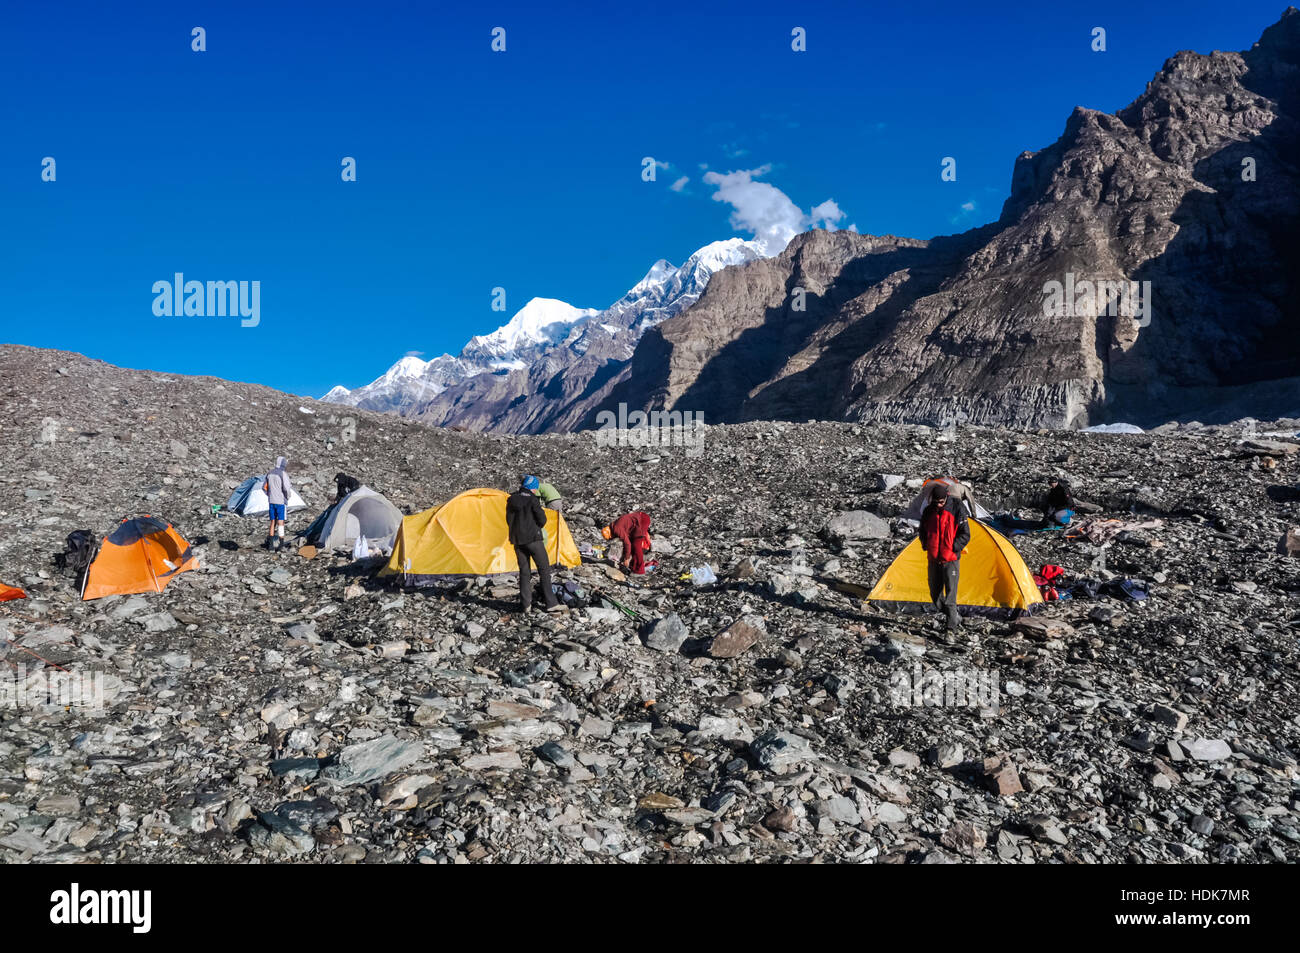 Photo of tents of hikers on rocks near South Inylcheck Glaciar in Kyrgystan. - Stock Image